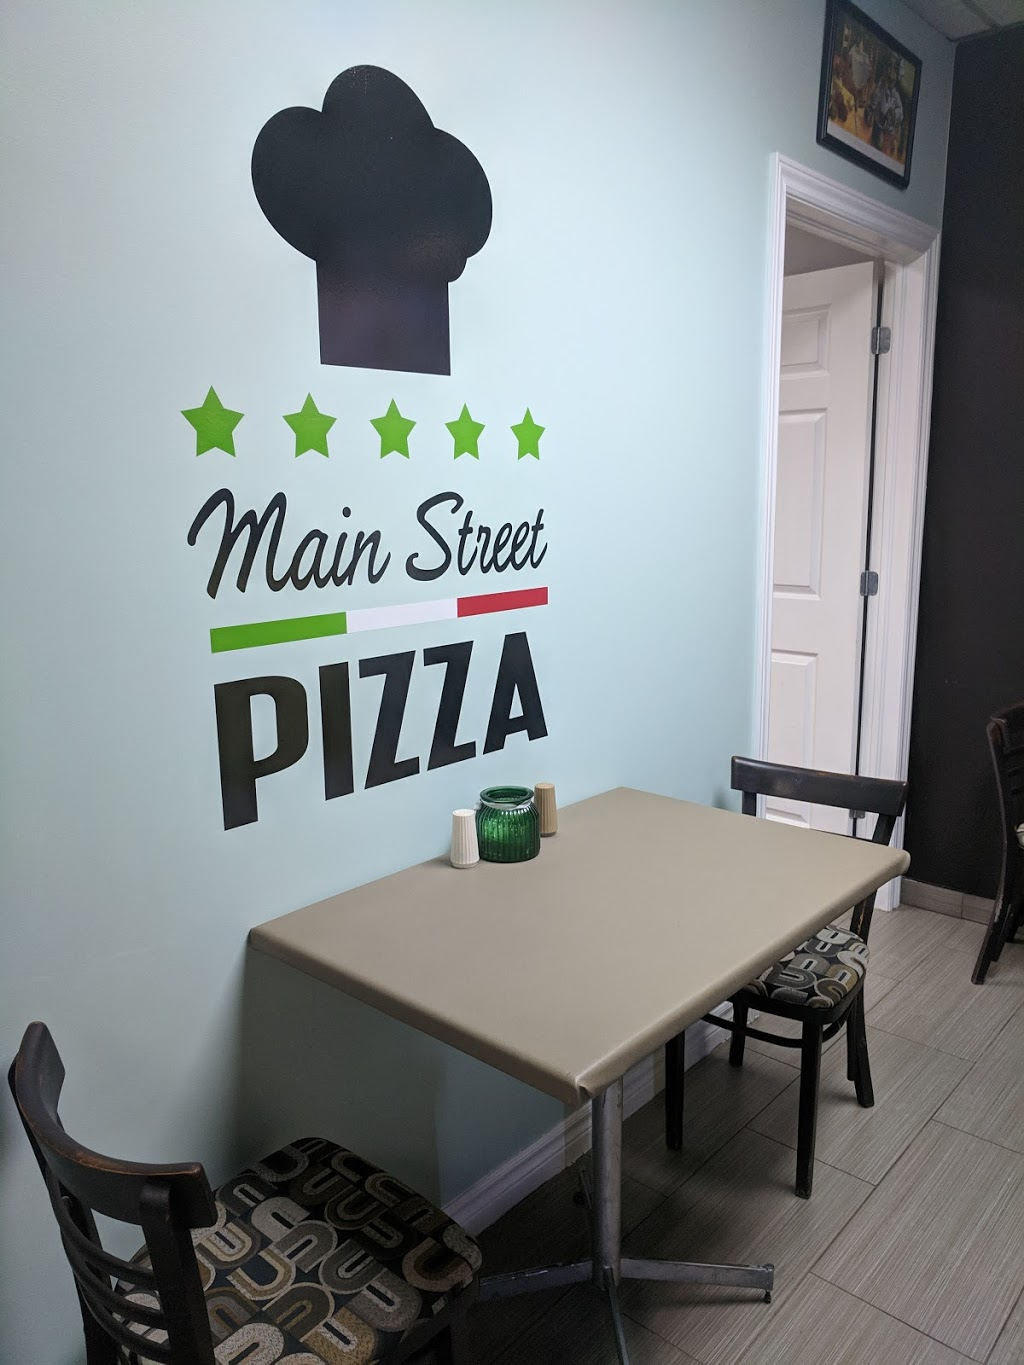 Main Street Pizza | restaurant | 1099 Laurier St, Rockland, ON K4K 1E3, Canada | 6134466663 OR +1 613-446-6663